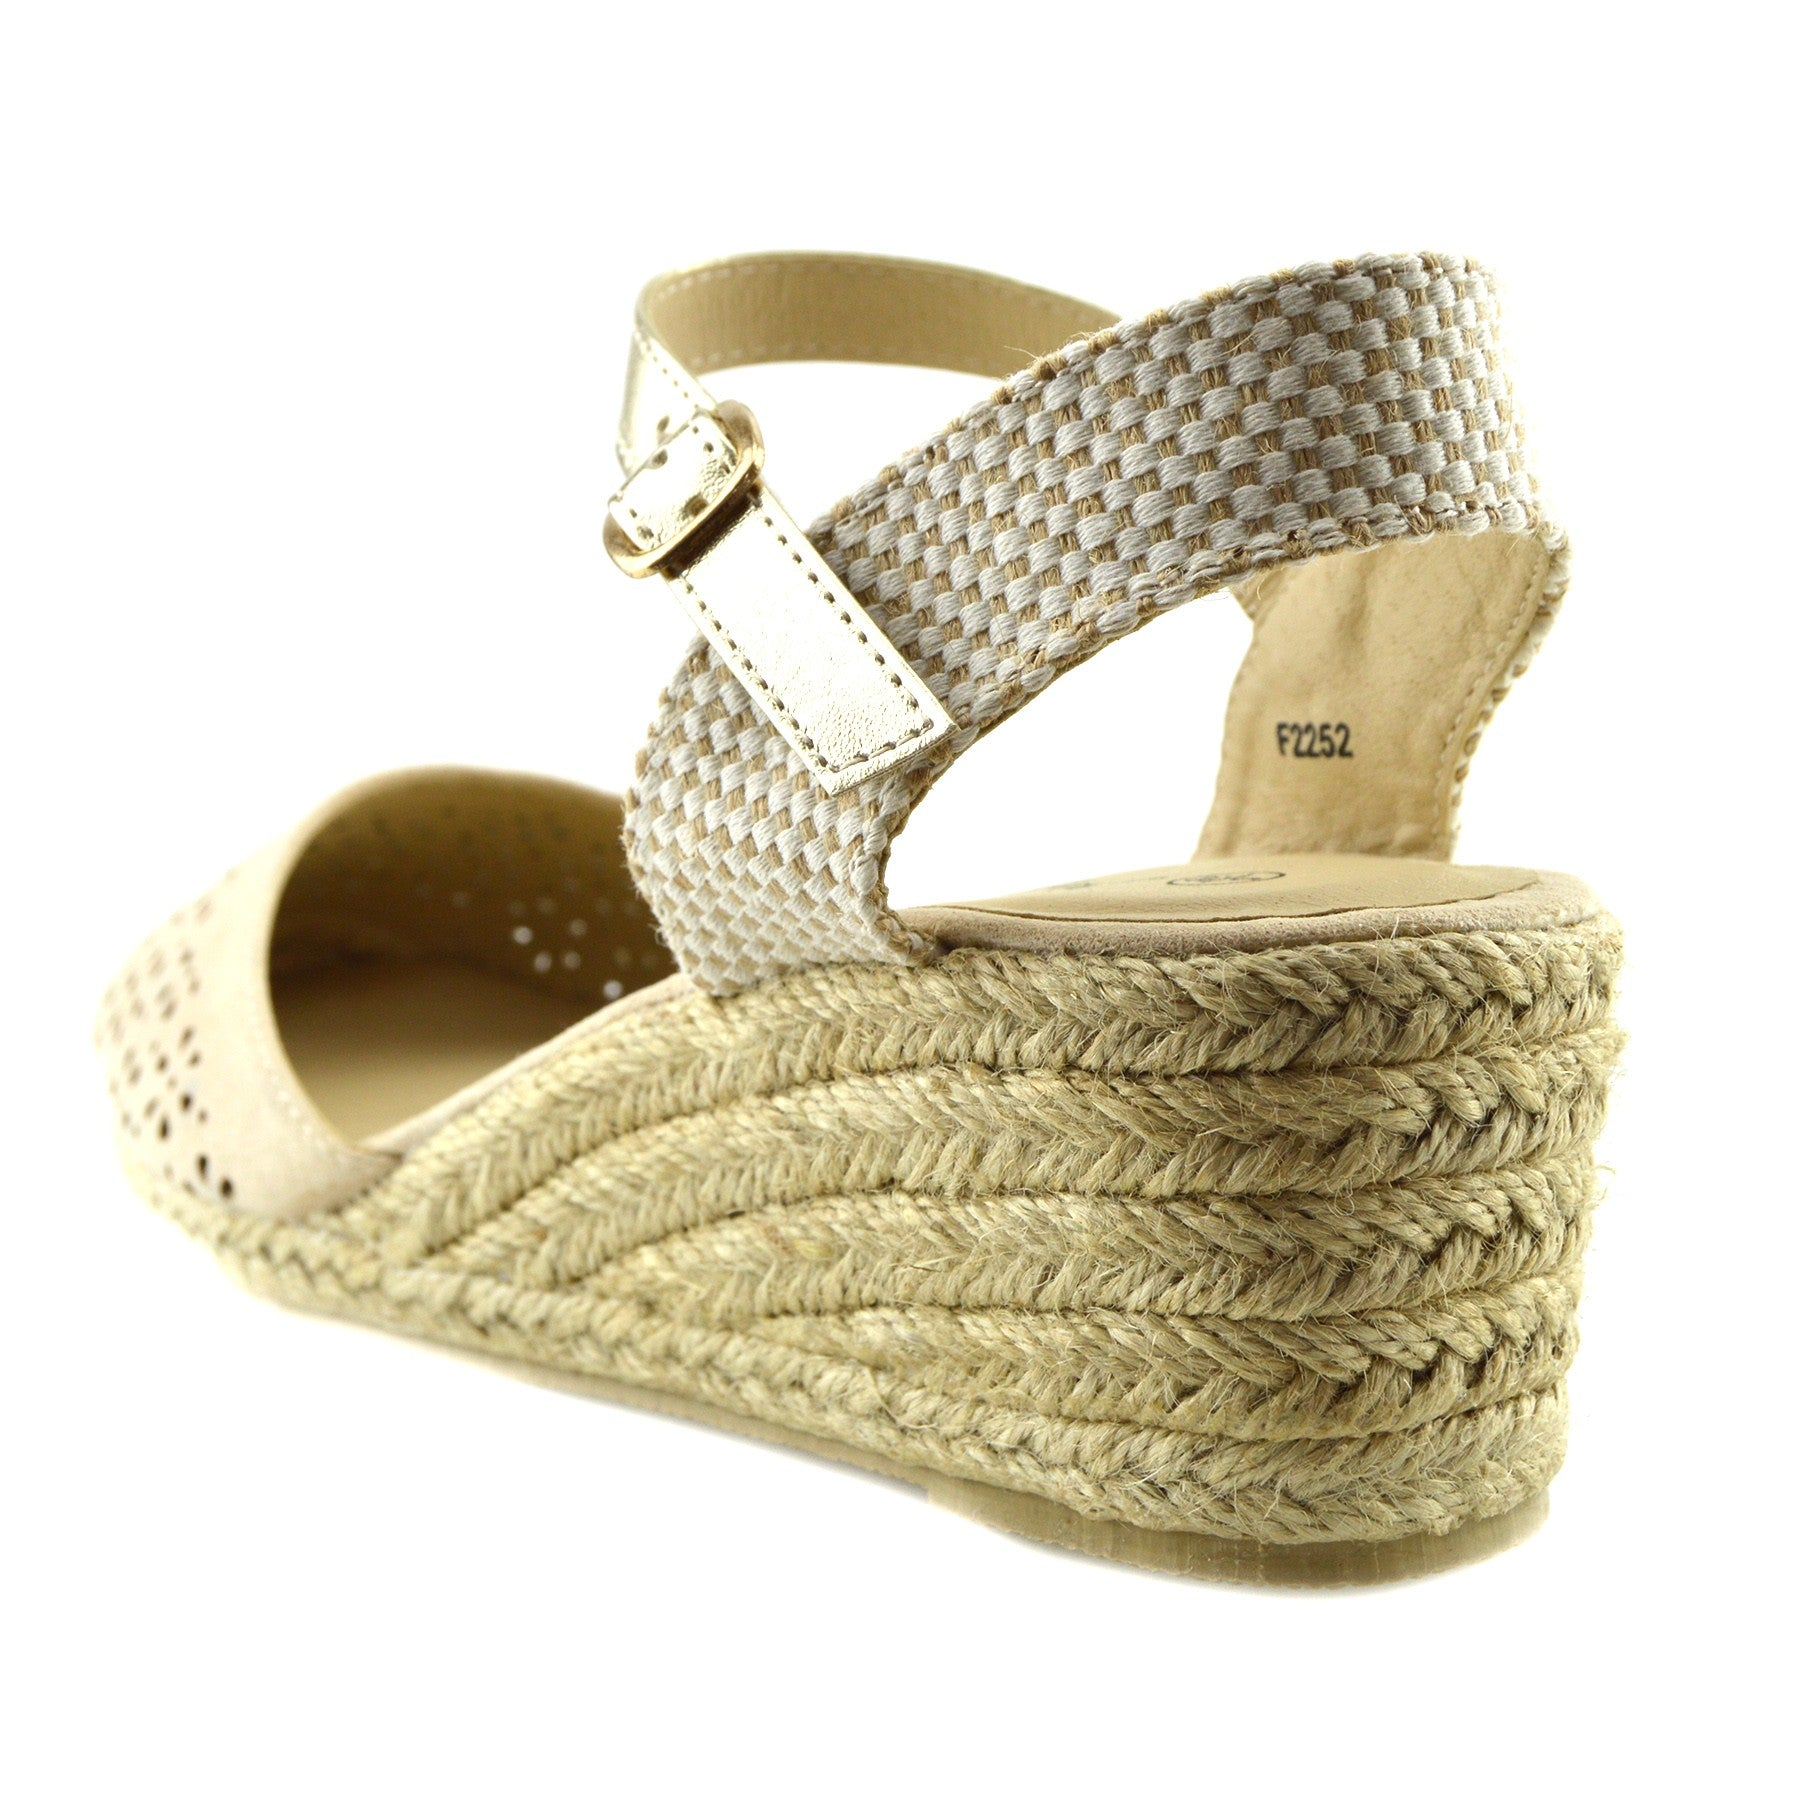 b5e3a9e214ef Womens Black Wedge Heels Comfortable Slingback Summer Sandals - Beige